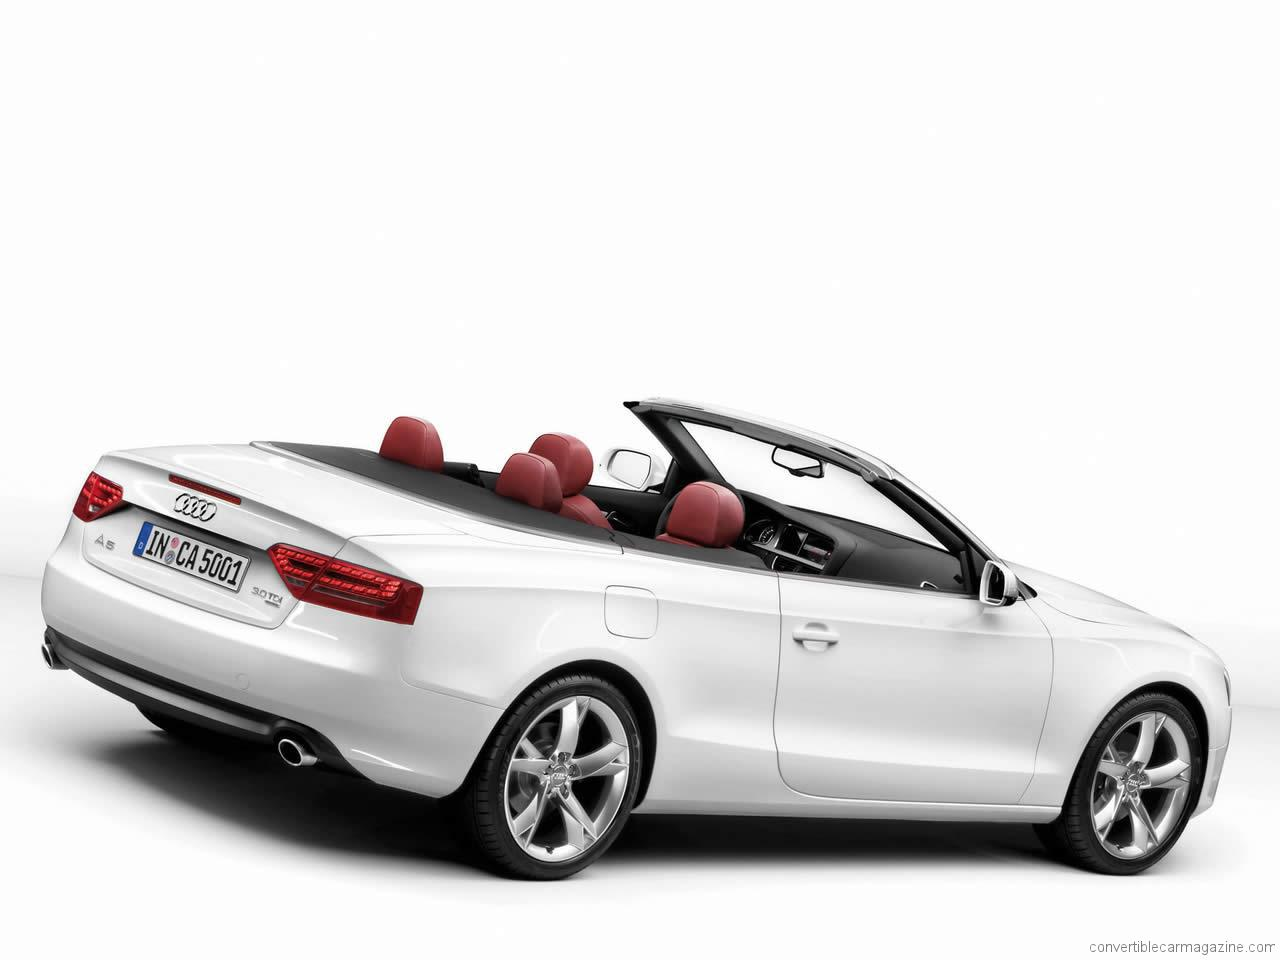 cars audi a5 cabriolet 8f7 2015 auto. Black Bedroom Furniture Sets. Home Design Ideas